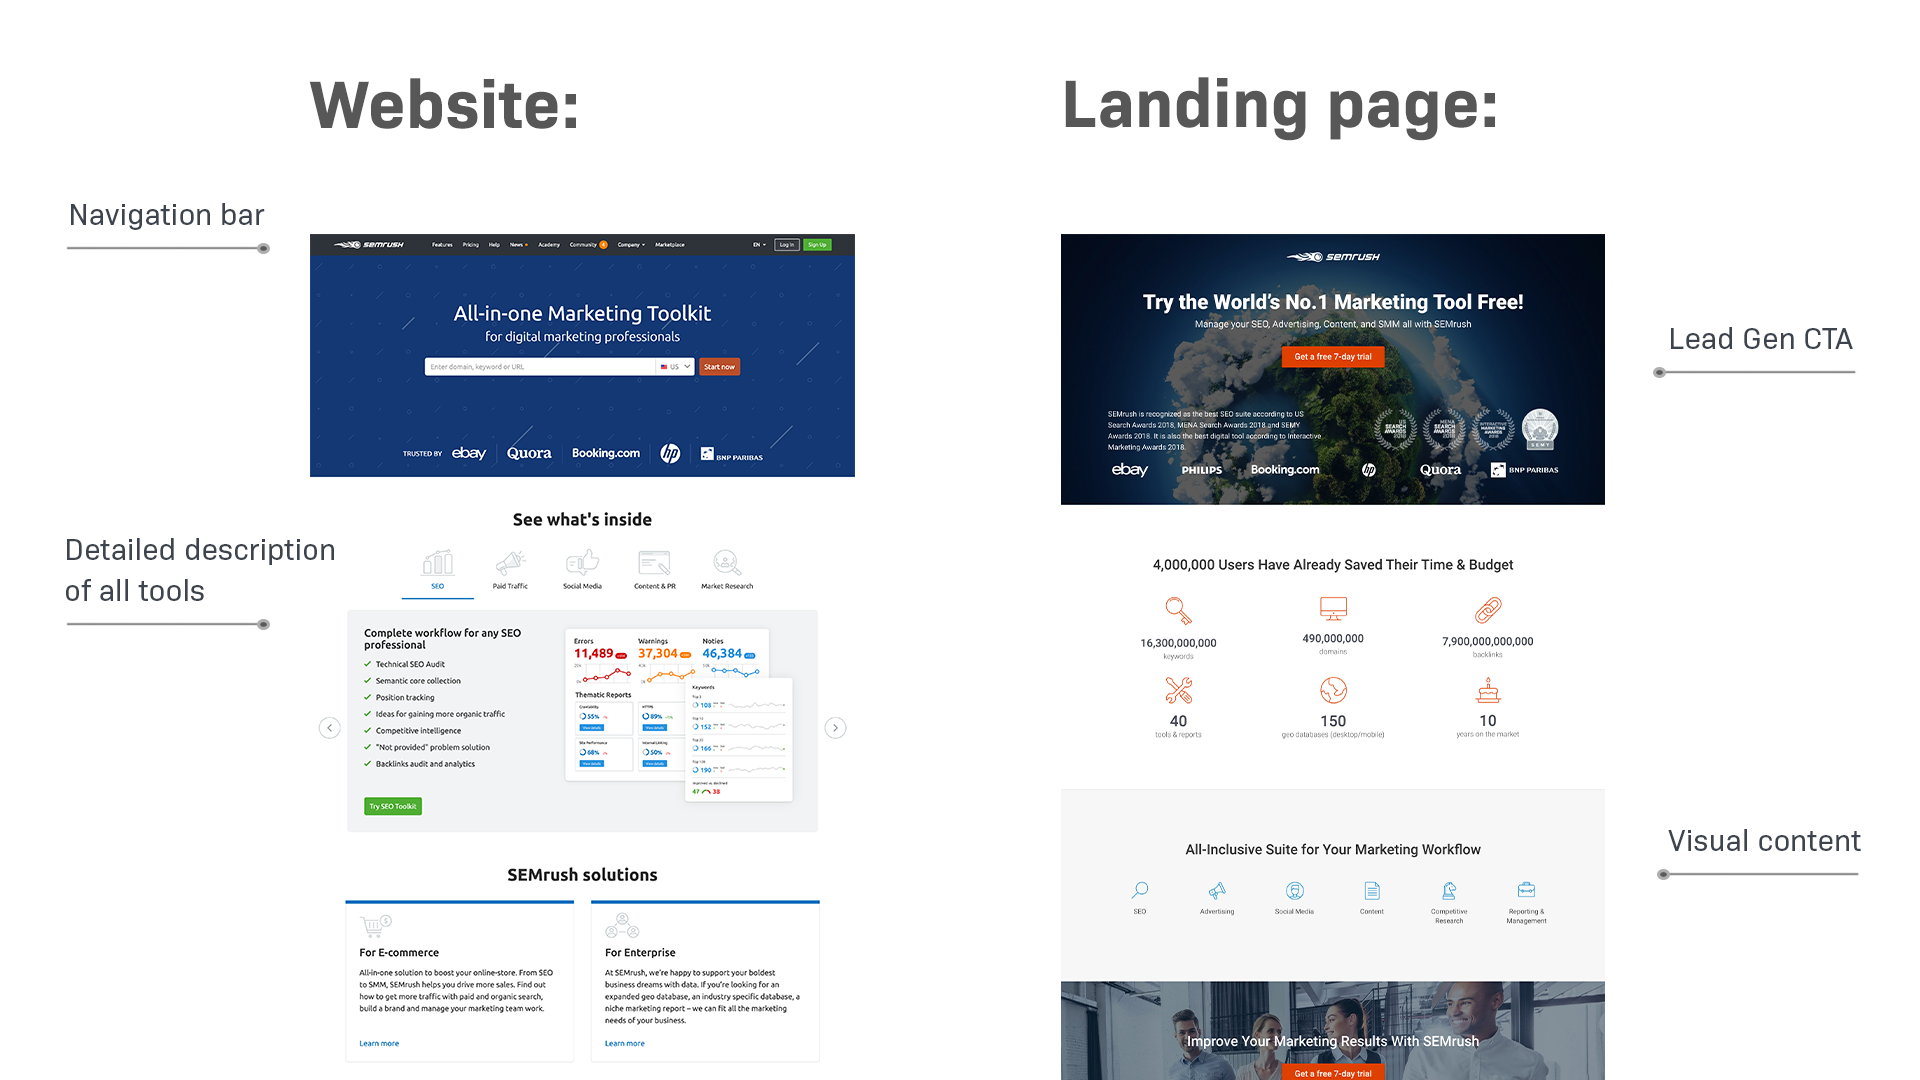 Differenza landing page sito